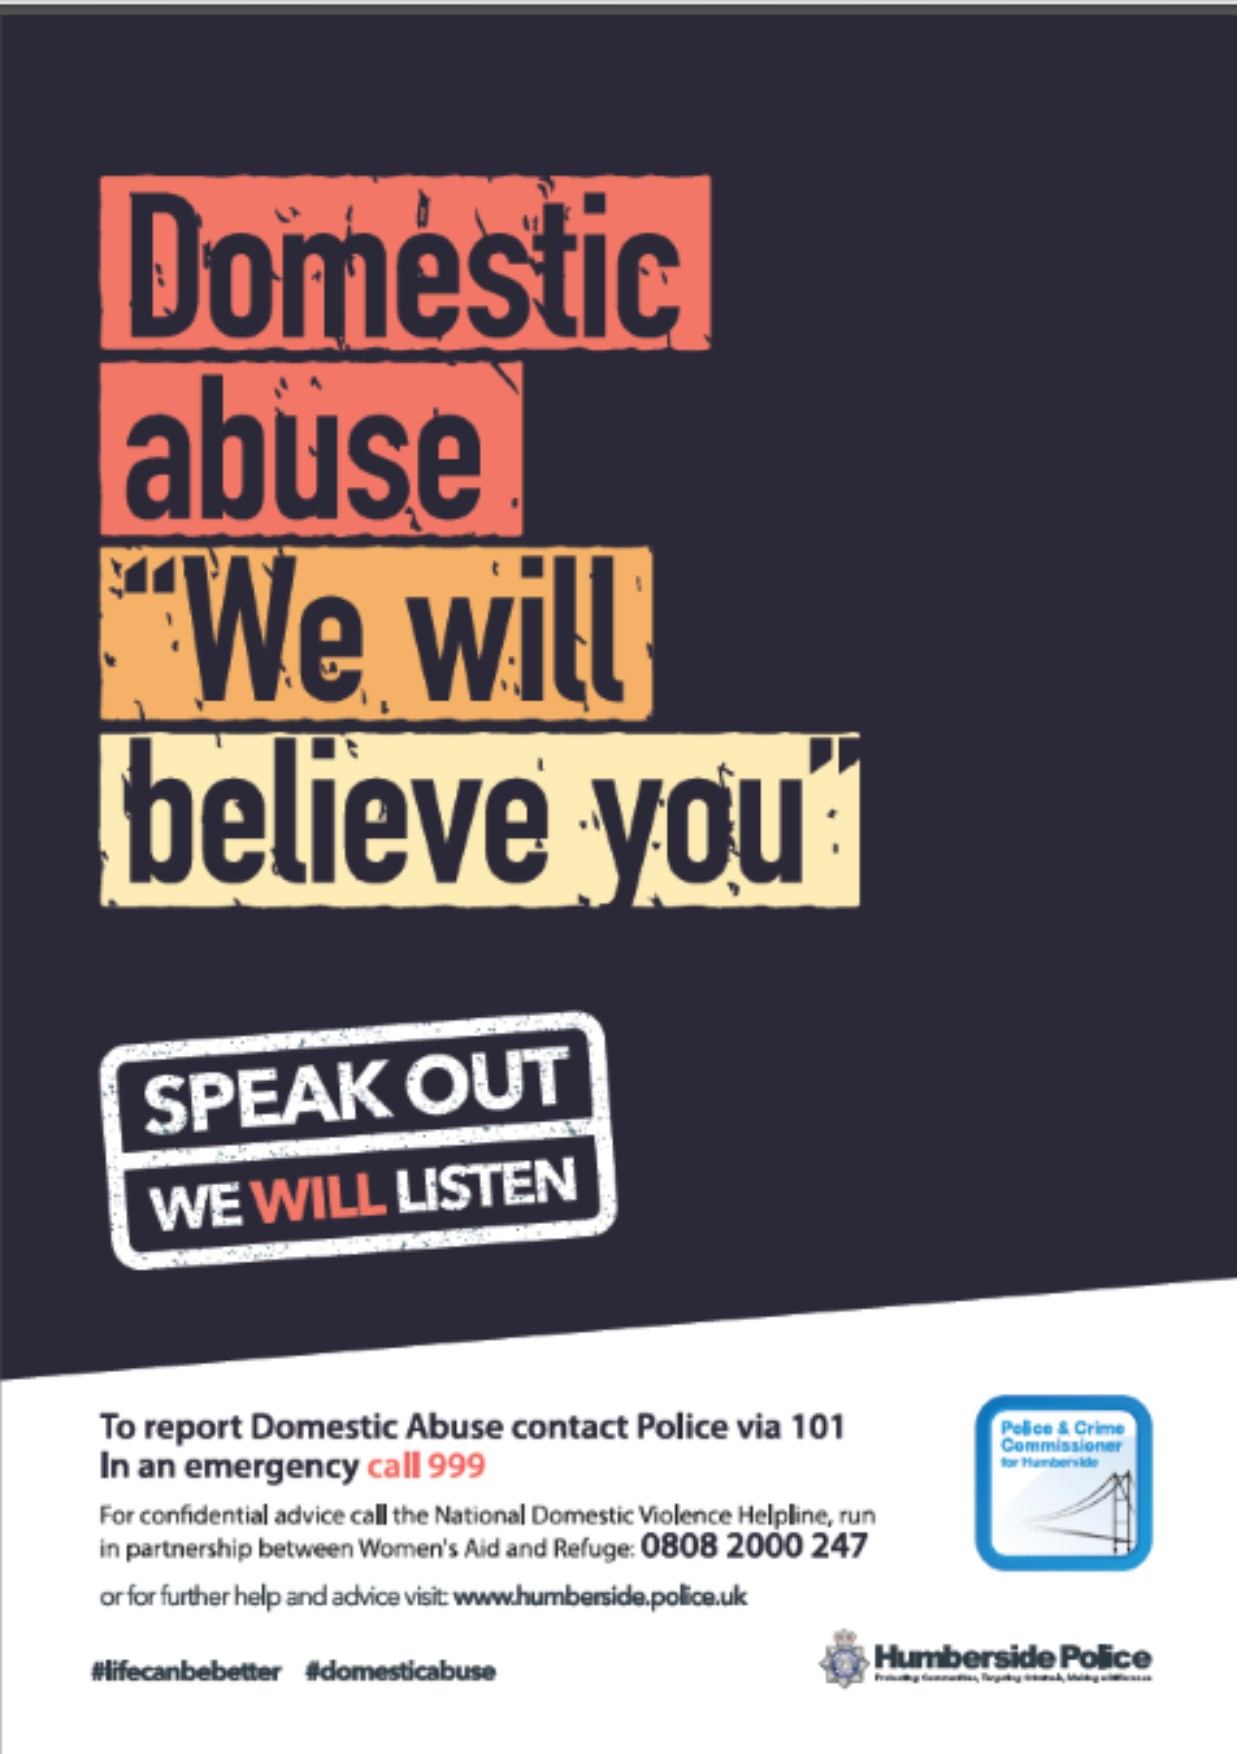 Humberside Police We Will Believe You Domestic Abuse Campaign